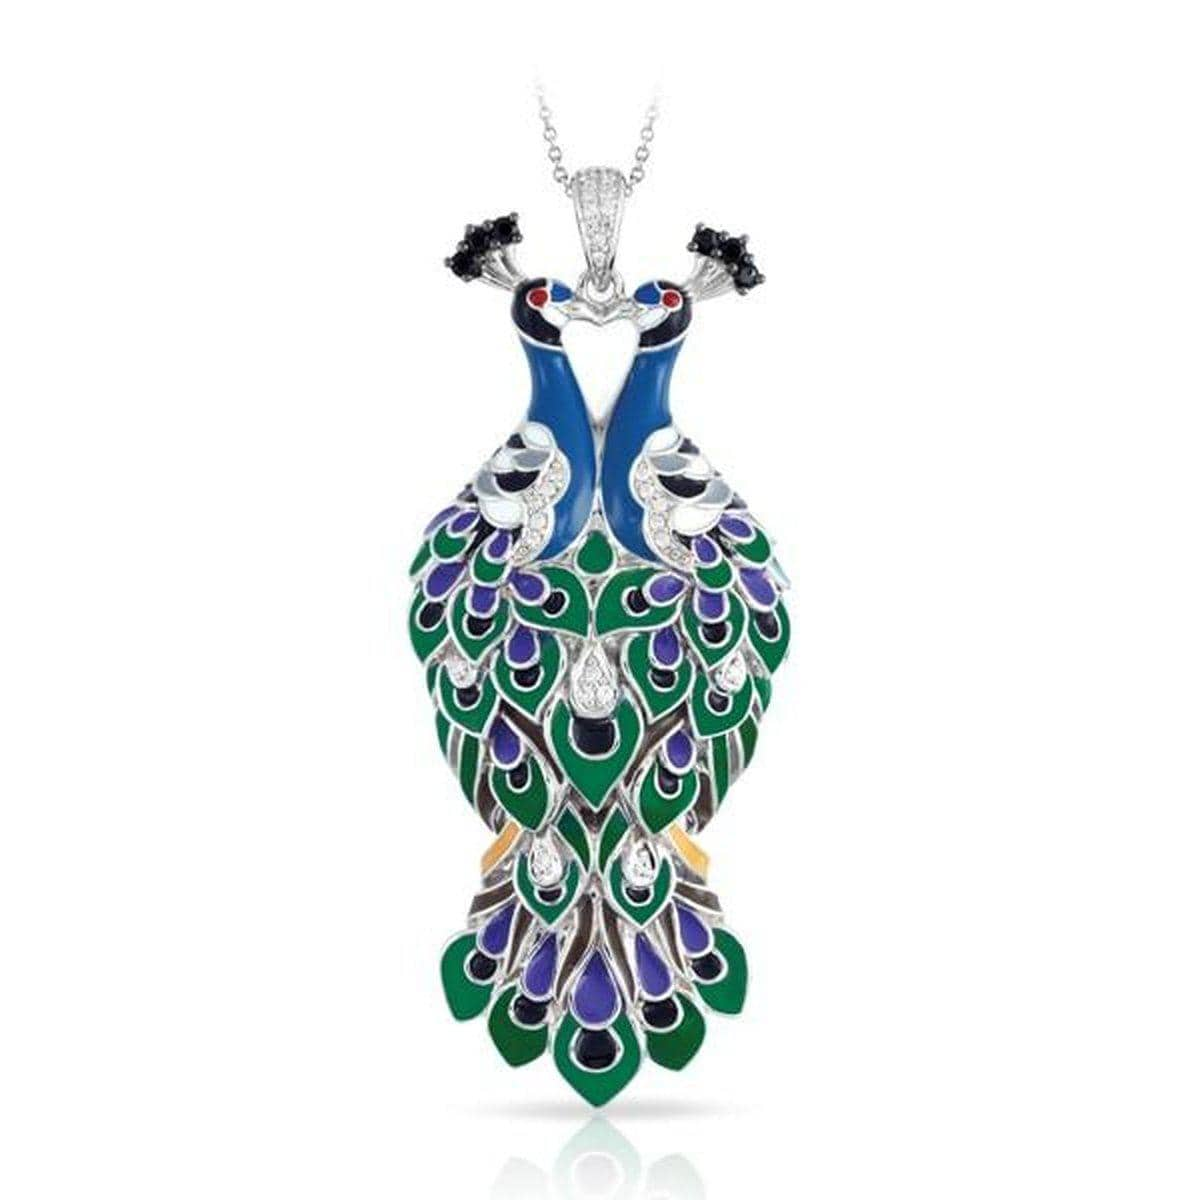 Love in Plume Green Pendant-Belle Etoile-Renee Taylor Gallery